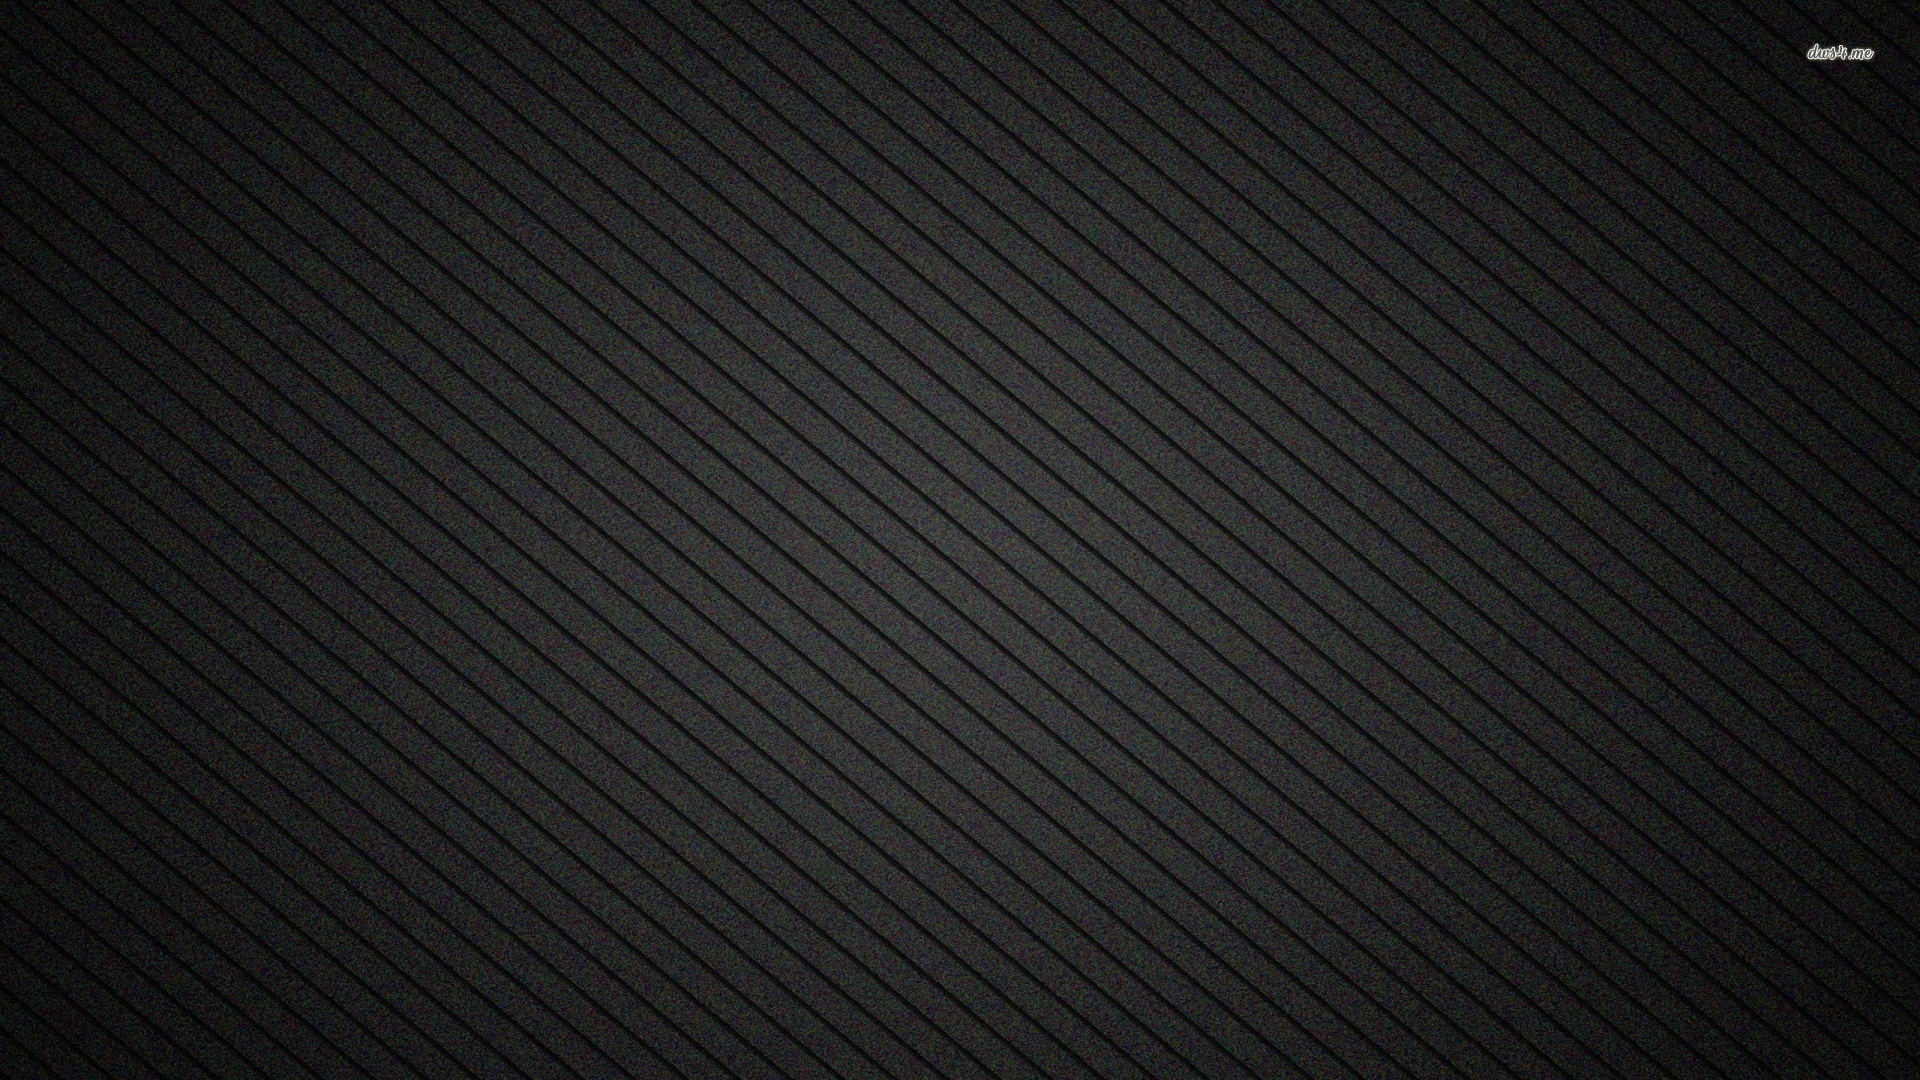 Grey background wallpaper wallpapersafari for Grey wallpaper